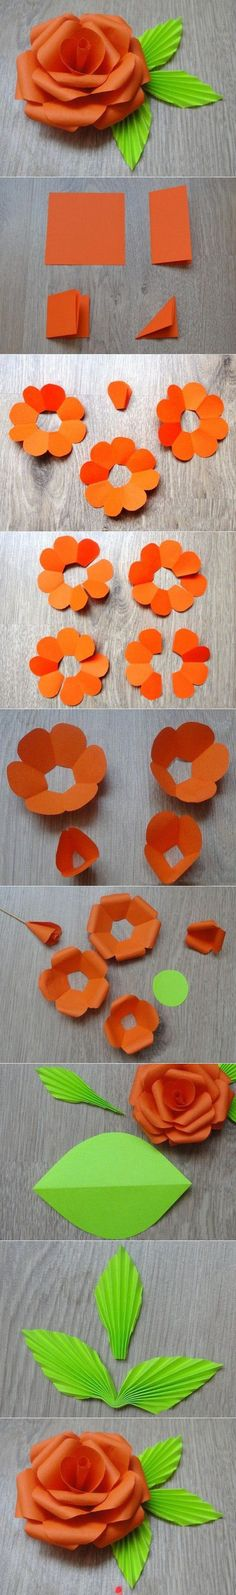 tutorial flores de papel 2